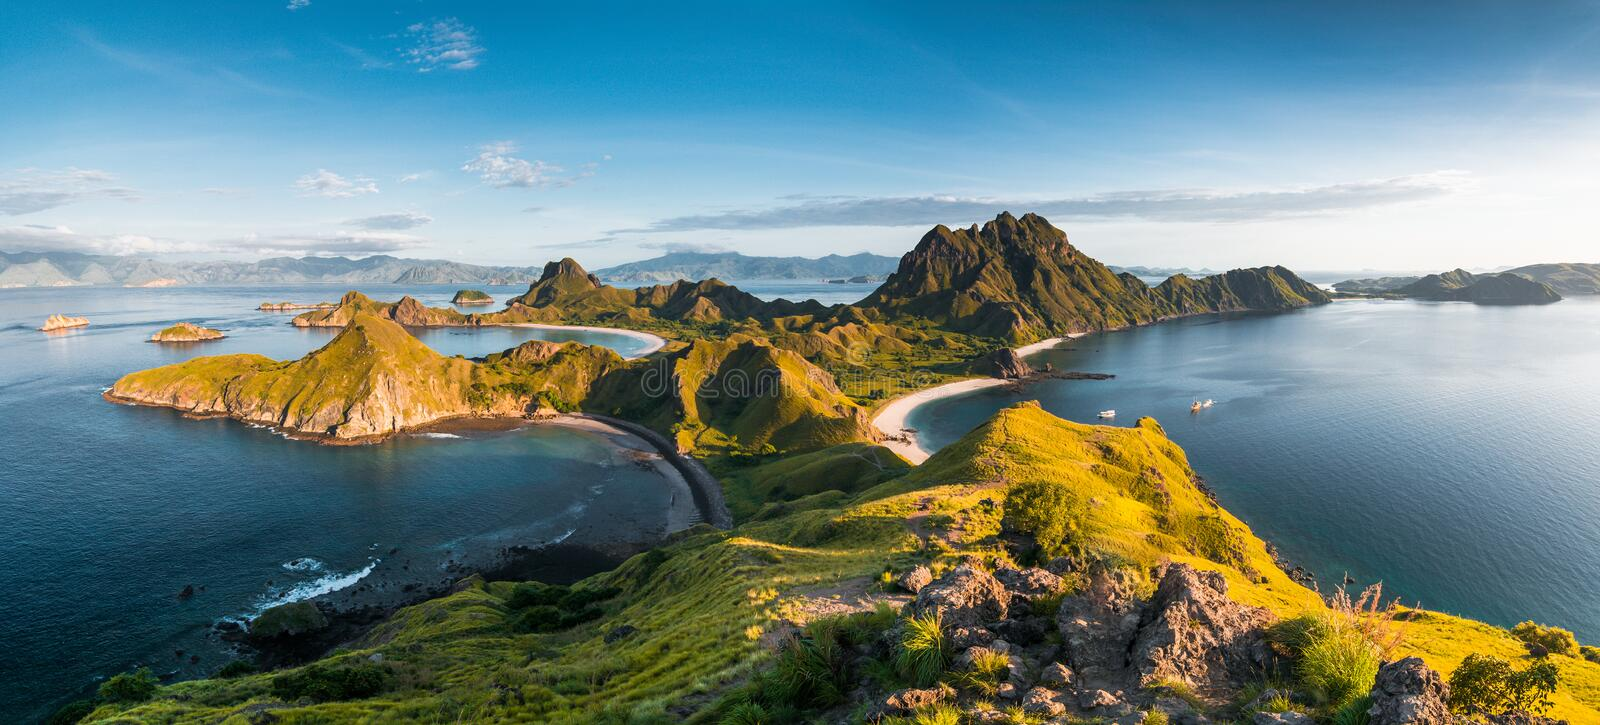 Top view of Padar Island in a morning from Komodo Island. Komodo National Park, Labuan Bajo, Flores, Indonesia royalty free stock photo